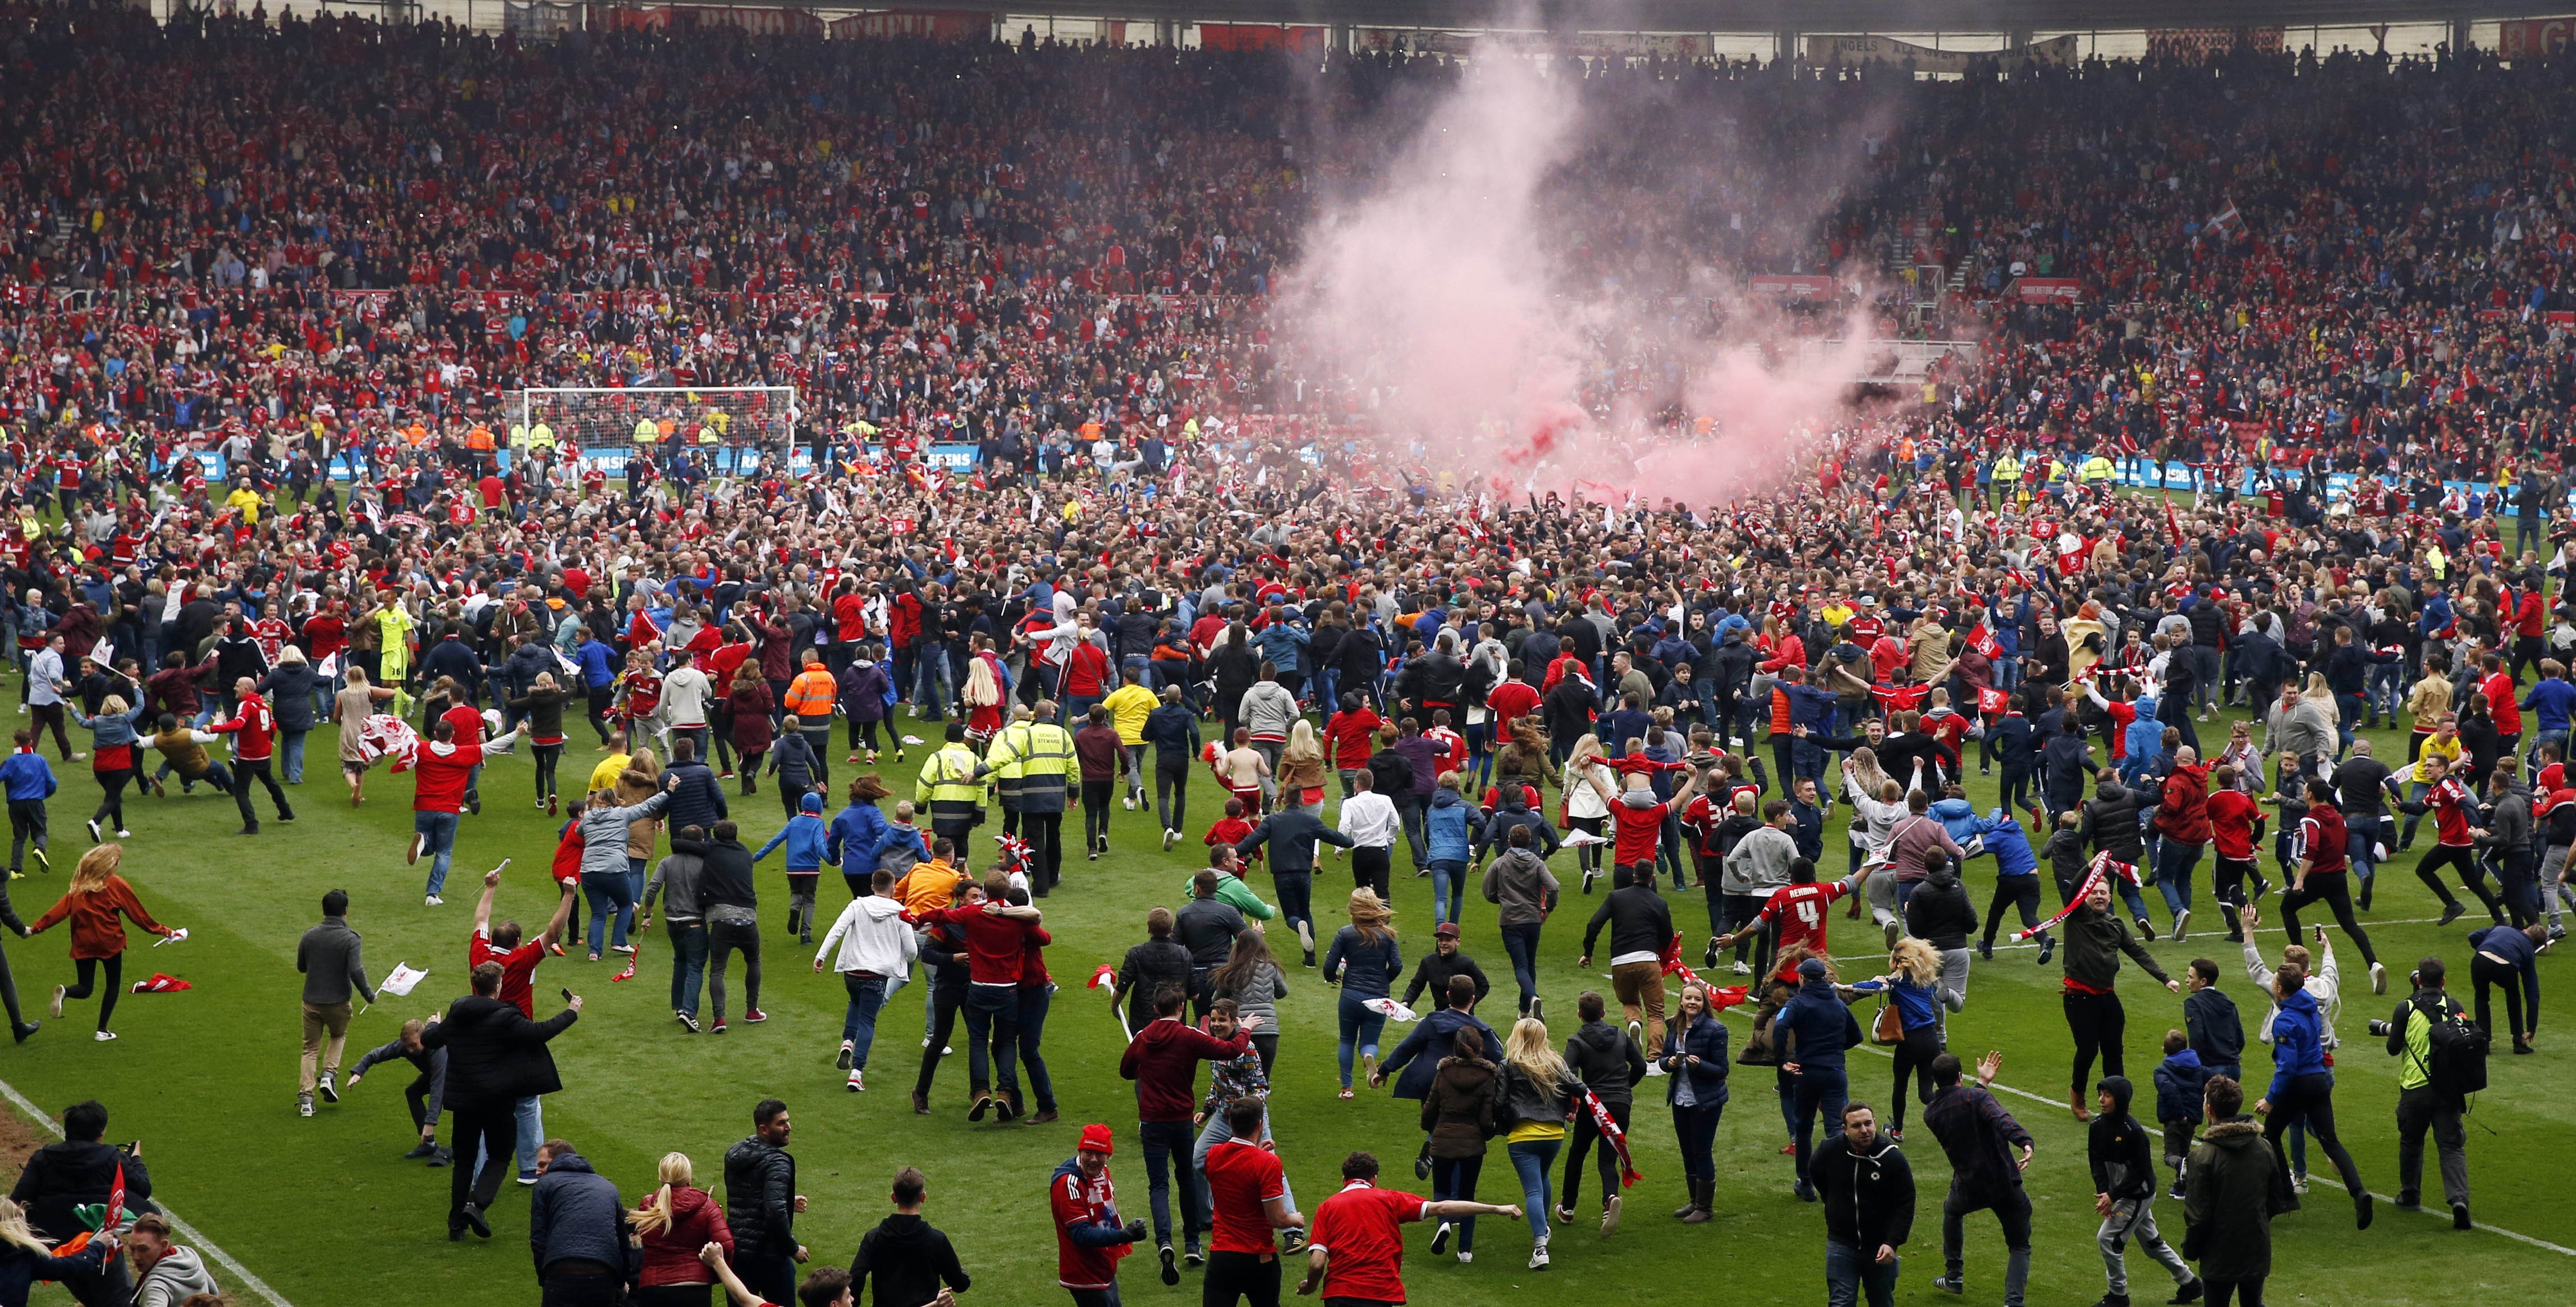 Middlesbrough fans invade pitch after securing promotion - they're back in top flight for first time since 2009